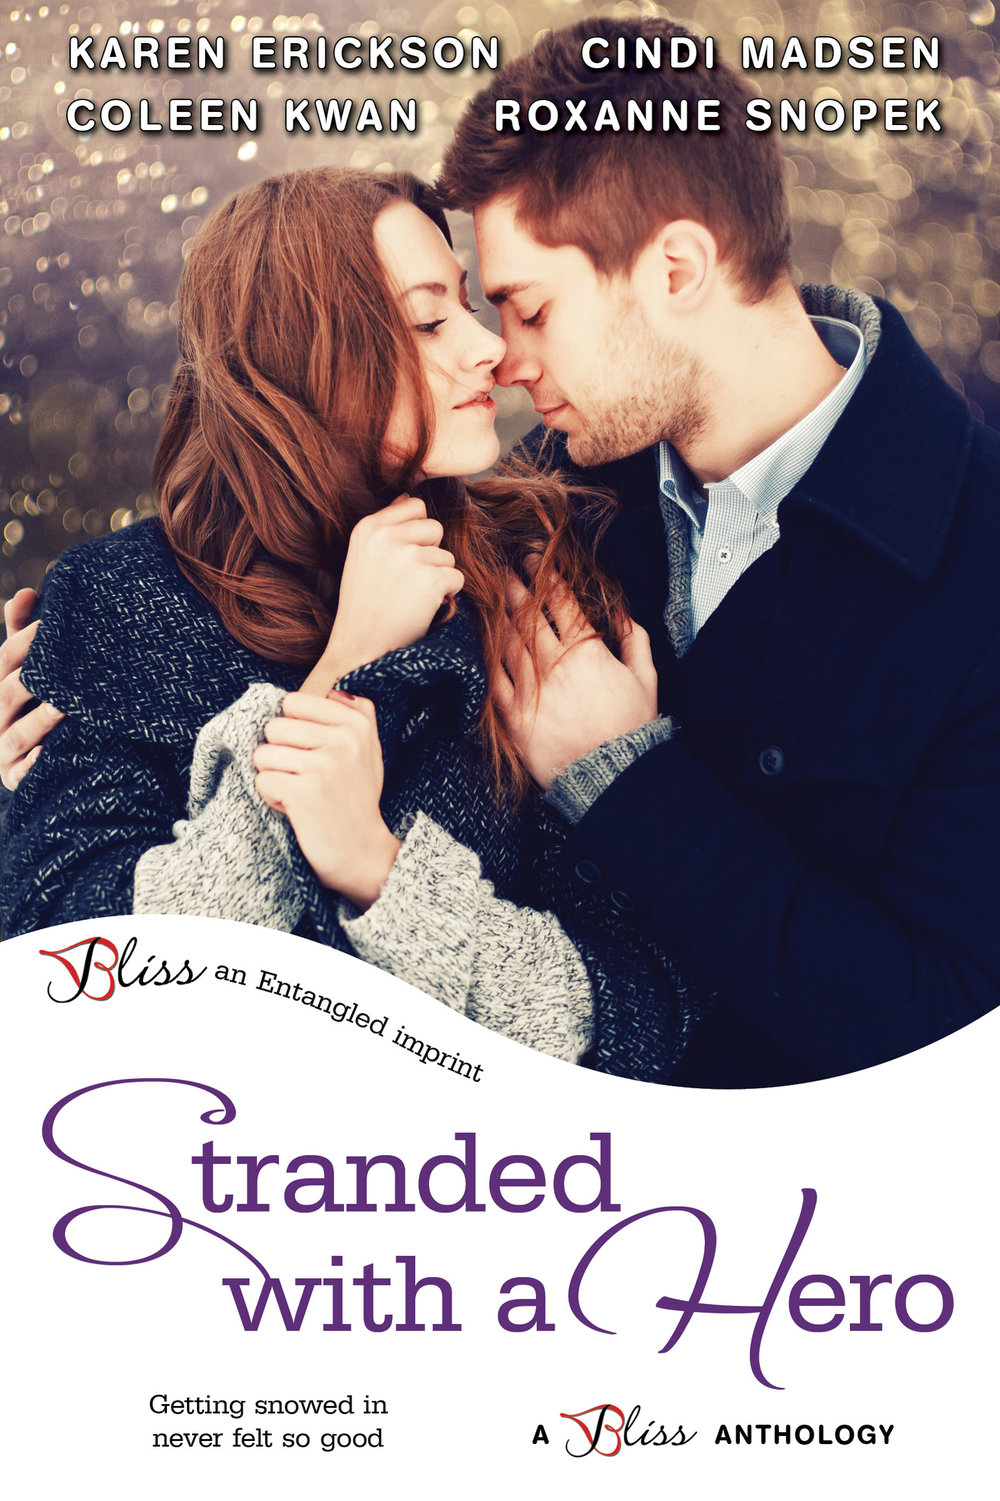 Stranded With A Hero - Lone Pine Lake, Book 3Amazon • B&N • iBooks • Kobo • BAM • GooglePlayGetting snowed in never felt so good as boundaries are crossed, opposites attract, and friends discovering more promise a Christmas no one will ever forget.Loving Mindy by Karen EricksonMindy can't believe she's stuck with her ex–best friend—and the man whose heart she broke years ago—for the holidays, though the tension between them is more than enough to keep them warm. Josh Powers never forgot Mindy, but he can't risk his heart a second time.White-Hot Holiday by Coleen KwanNaomi's sworn off men like Aaron—rich, cocky, and dismissive of holiday traditions. Aaron decided to spend Christmas in sunny Australia to avoid snowy New York, not to fall for the woman his best friend warned him away from. But when a volcano grounds him, Aaron and Naomi's relationship becomes eruptive.An Officer and a Rebel by Cindi MadsenThe last person police officer Nate Walsh expected to discover in a snowstorm is his brother's ex and former town rebel, Kelsey Cooper. She's his complete opposite and totally off-limits, but as they wait out the storm together, all he can think is how he wishes she'd stay forever.Saving the Sheriff by Roxanne SnopekFrankie Sylva was determined to free the captive reindeer, even if it meant risking her own life. Deputy Sheriff Red LeClair set out to save a stranger in a snowstorm, never expecting he'd be the one to be rescued.Amazon • B&N • iBooks • Kobo • BAM • GooglePlay